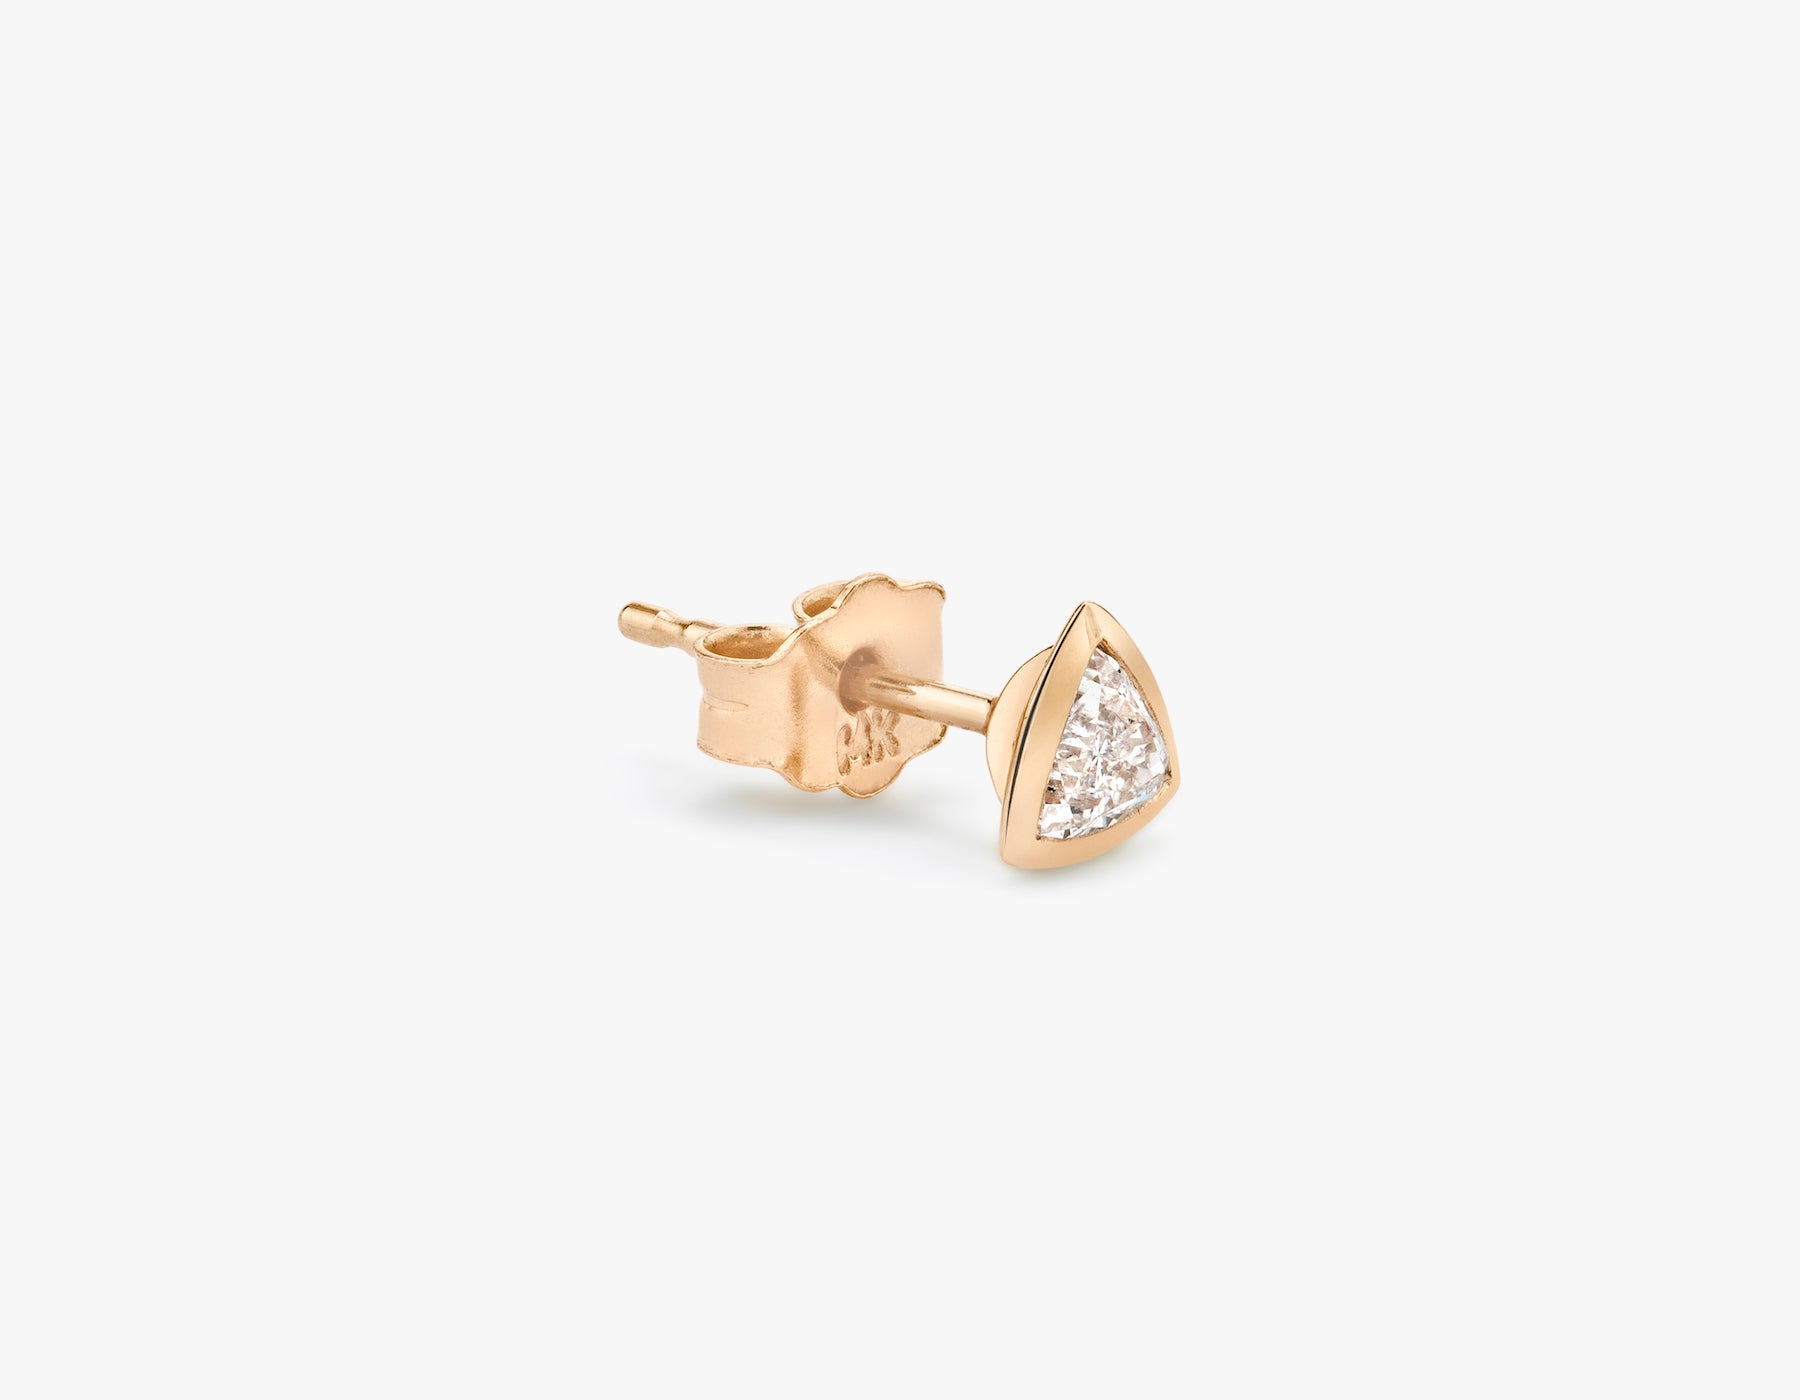 Vrai classic minimalist Trillion Diamond Bezel Stud Earring, 14K Rose Gold